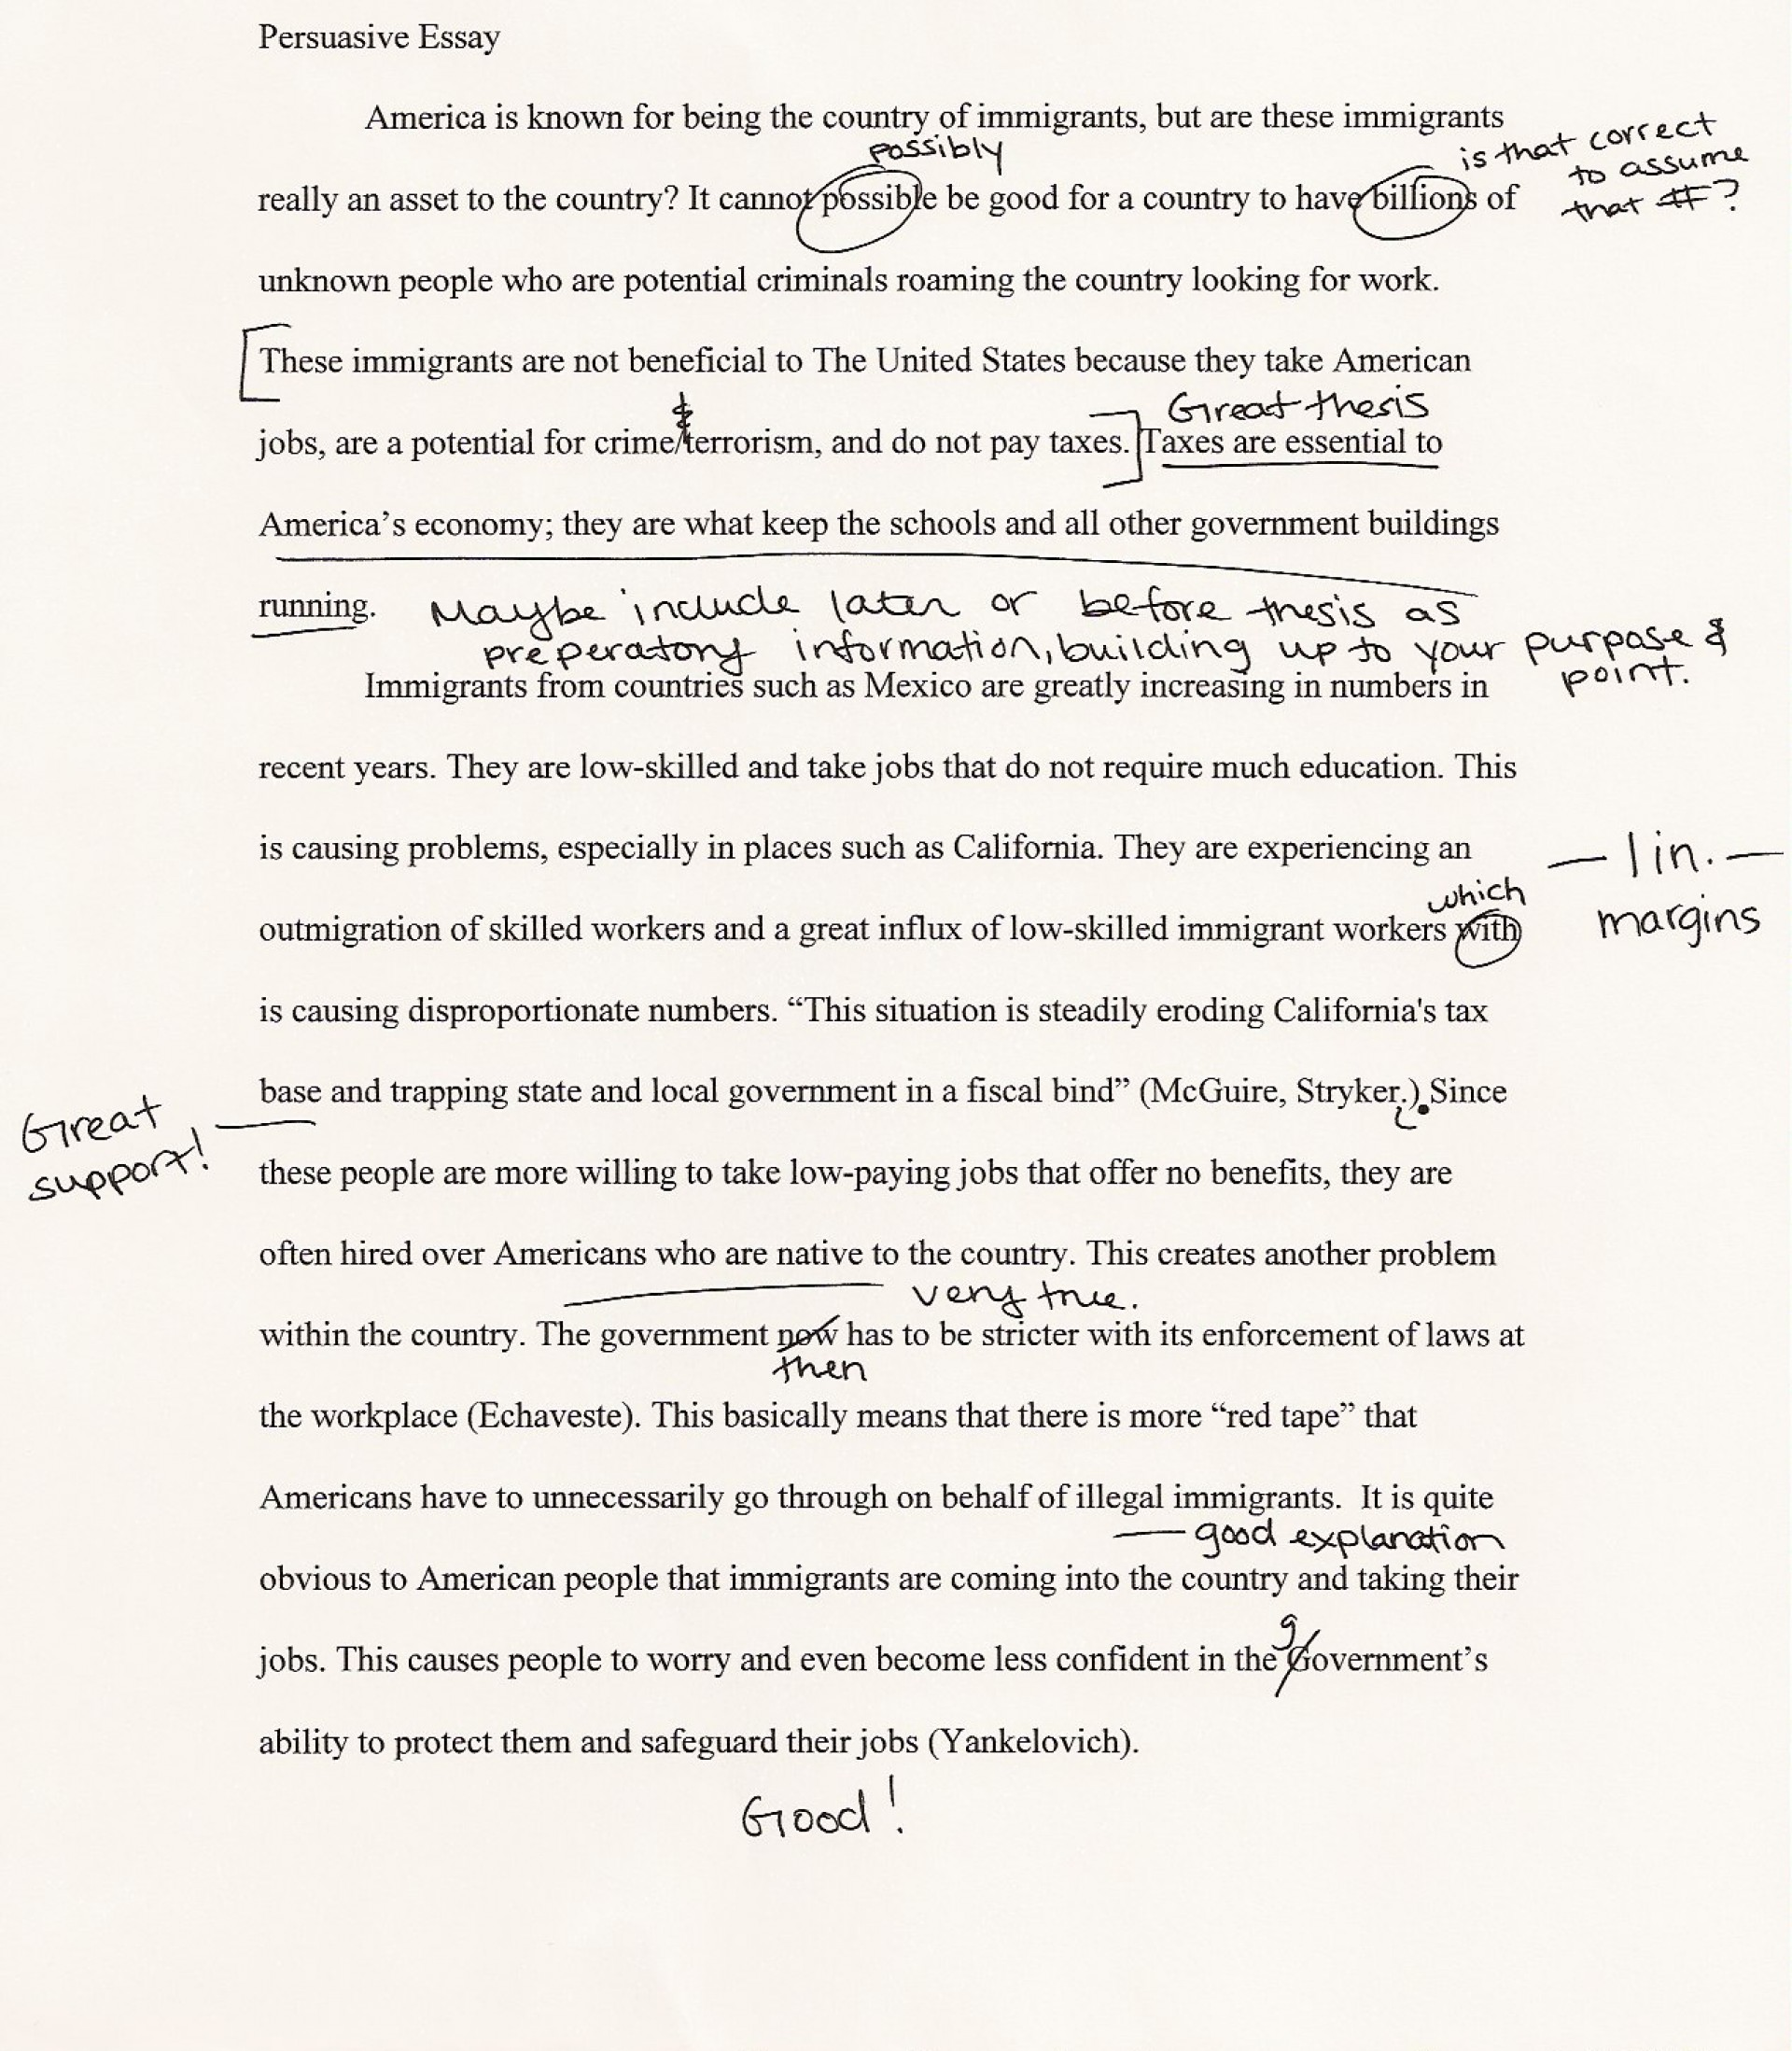 005 Essay Example Good Hook For An Impressive A Examples Of Argumentative On To Kill Mockingbird About Music 1920